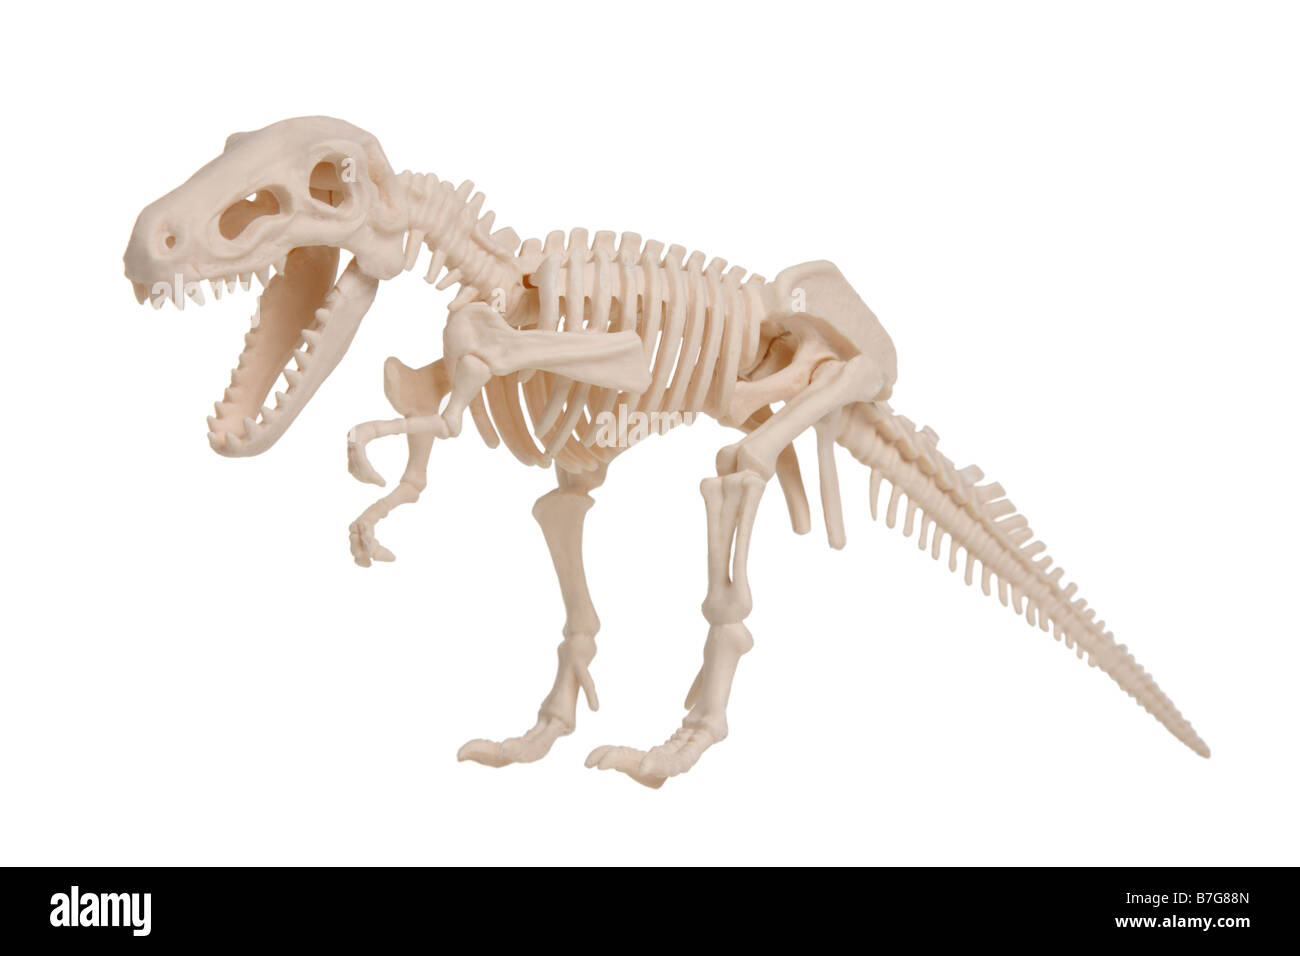 Dinosaur skeleton model cut out on white background - Stock Image